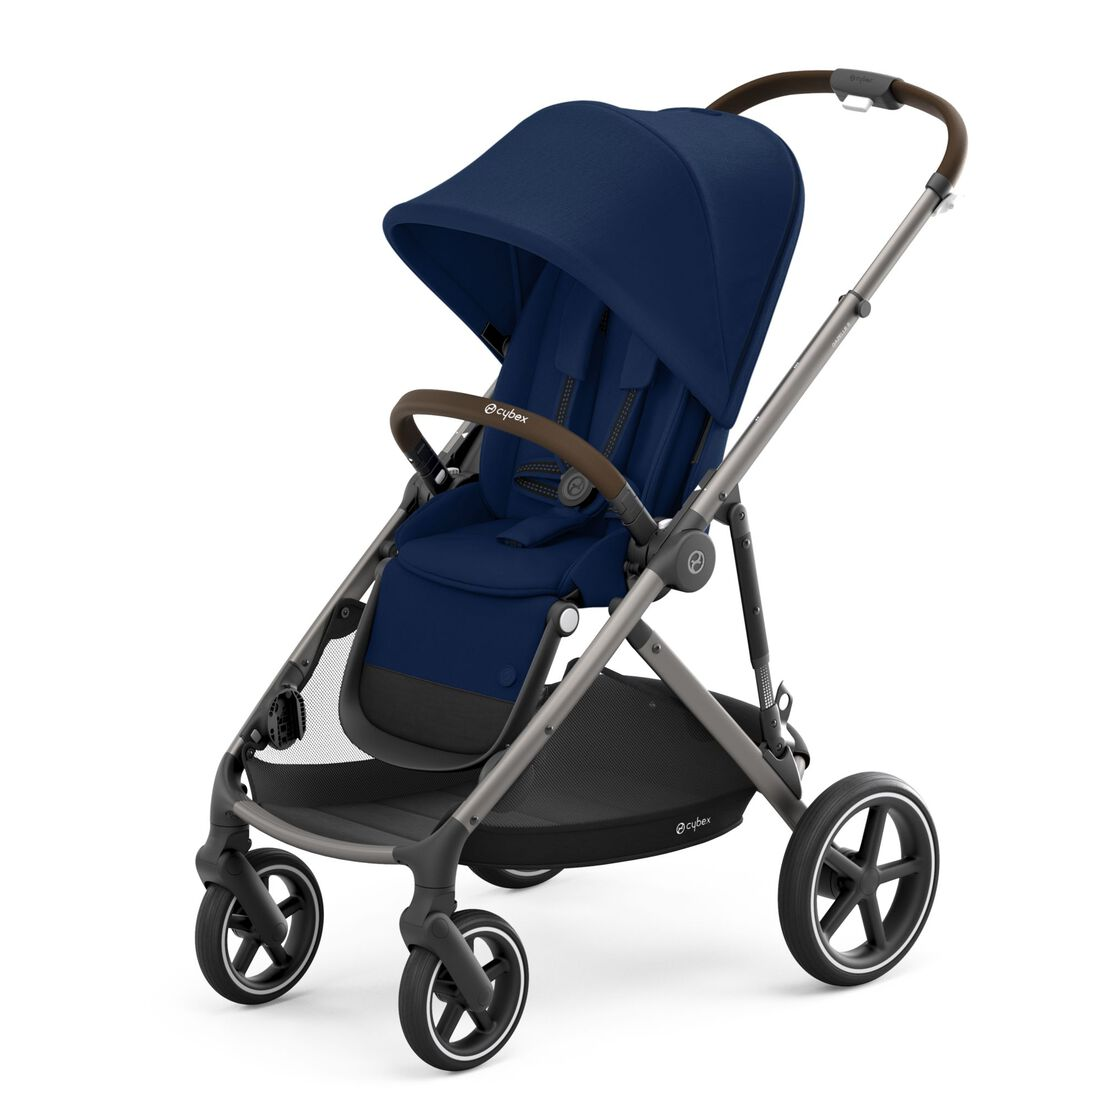 CYBEX Gazelle S - Navy Blue (Taupe Frame) in Navy Blue (Taupe Frame) large Bild 2